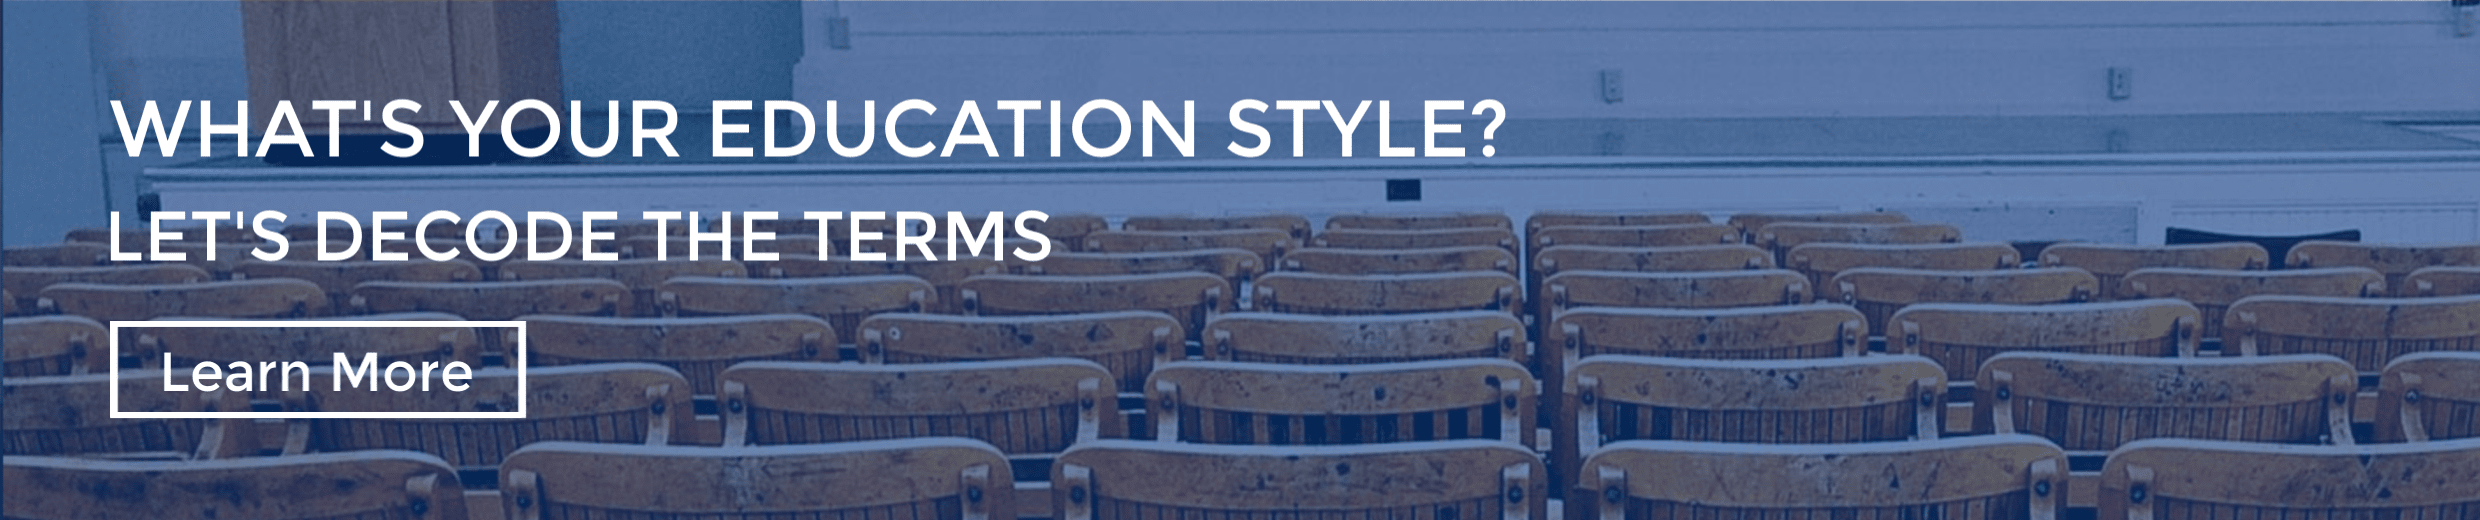 What;s your education style? Let's decode the terms